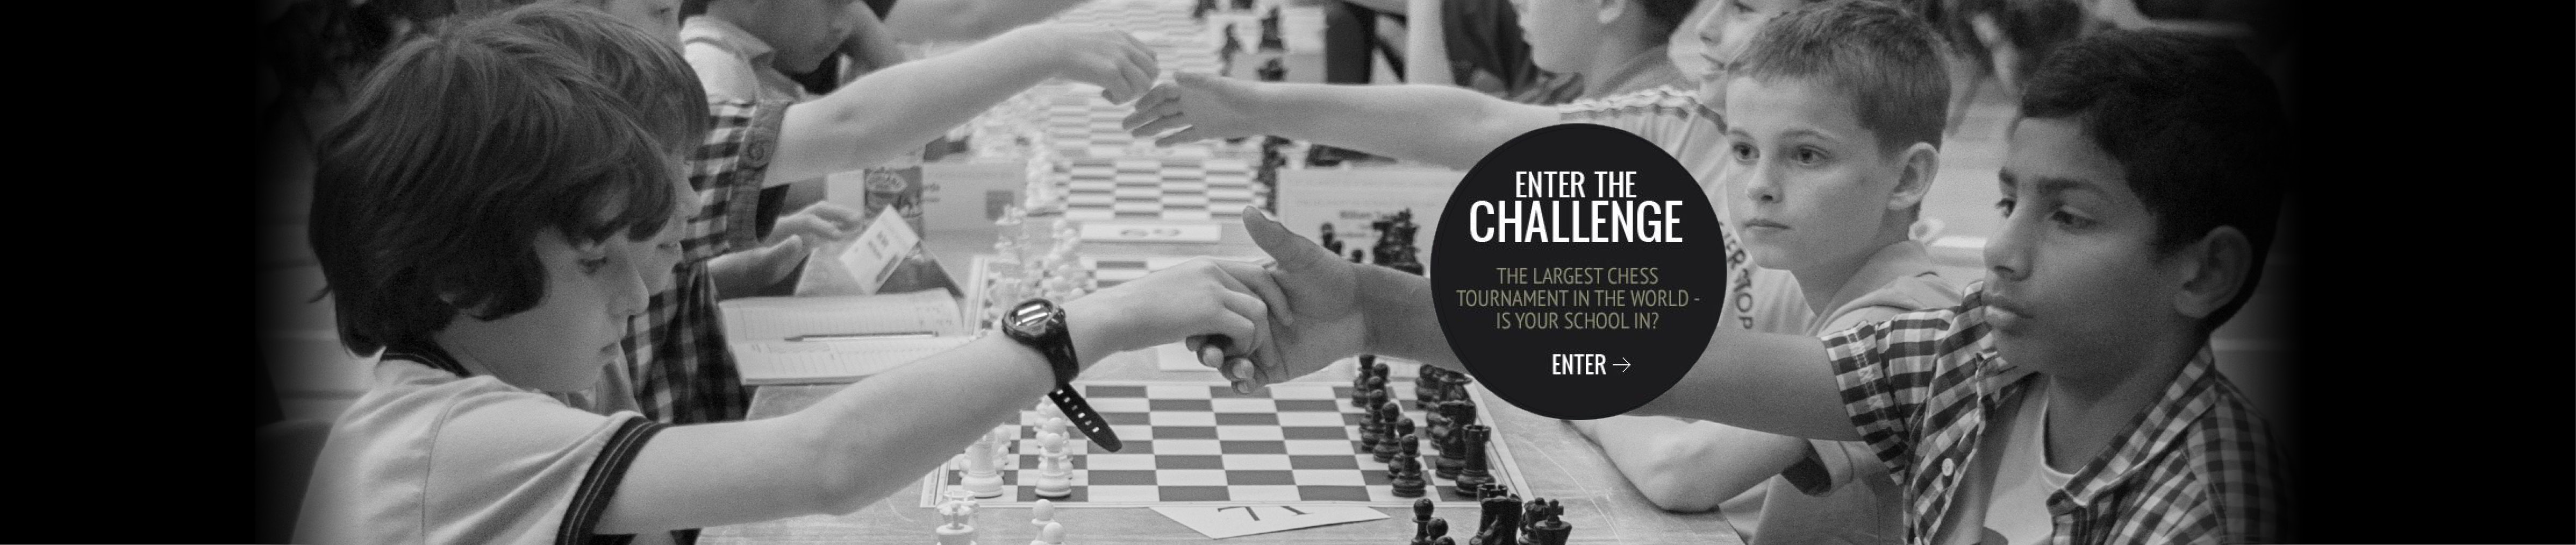 Enter the Challenge Delancey UK Schools Chess Challenge